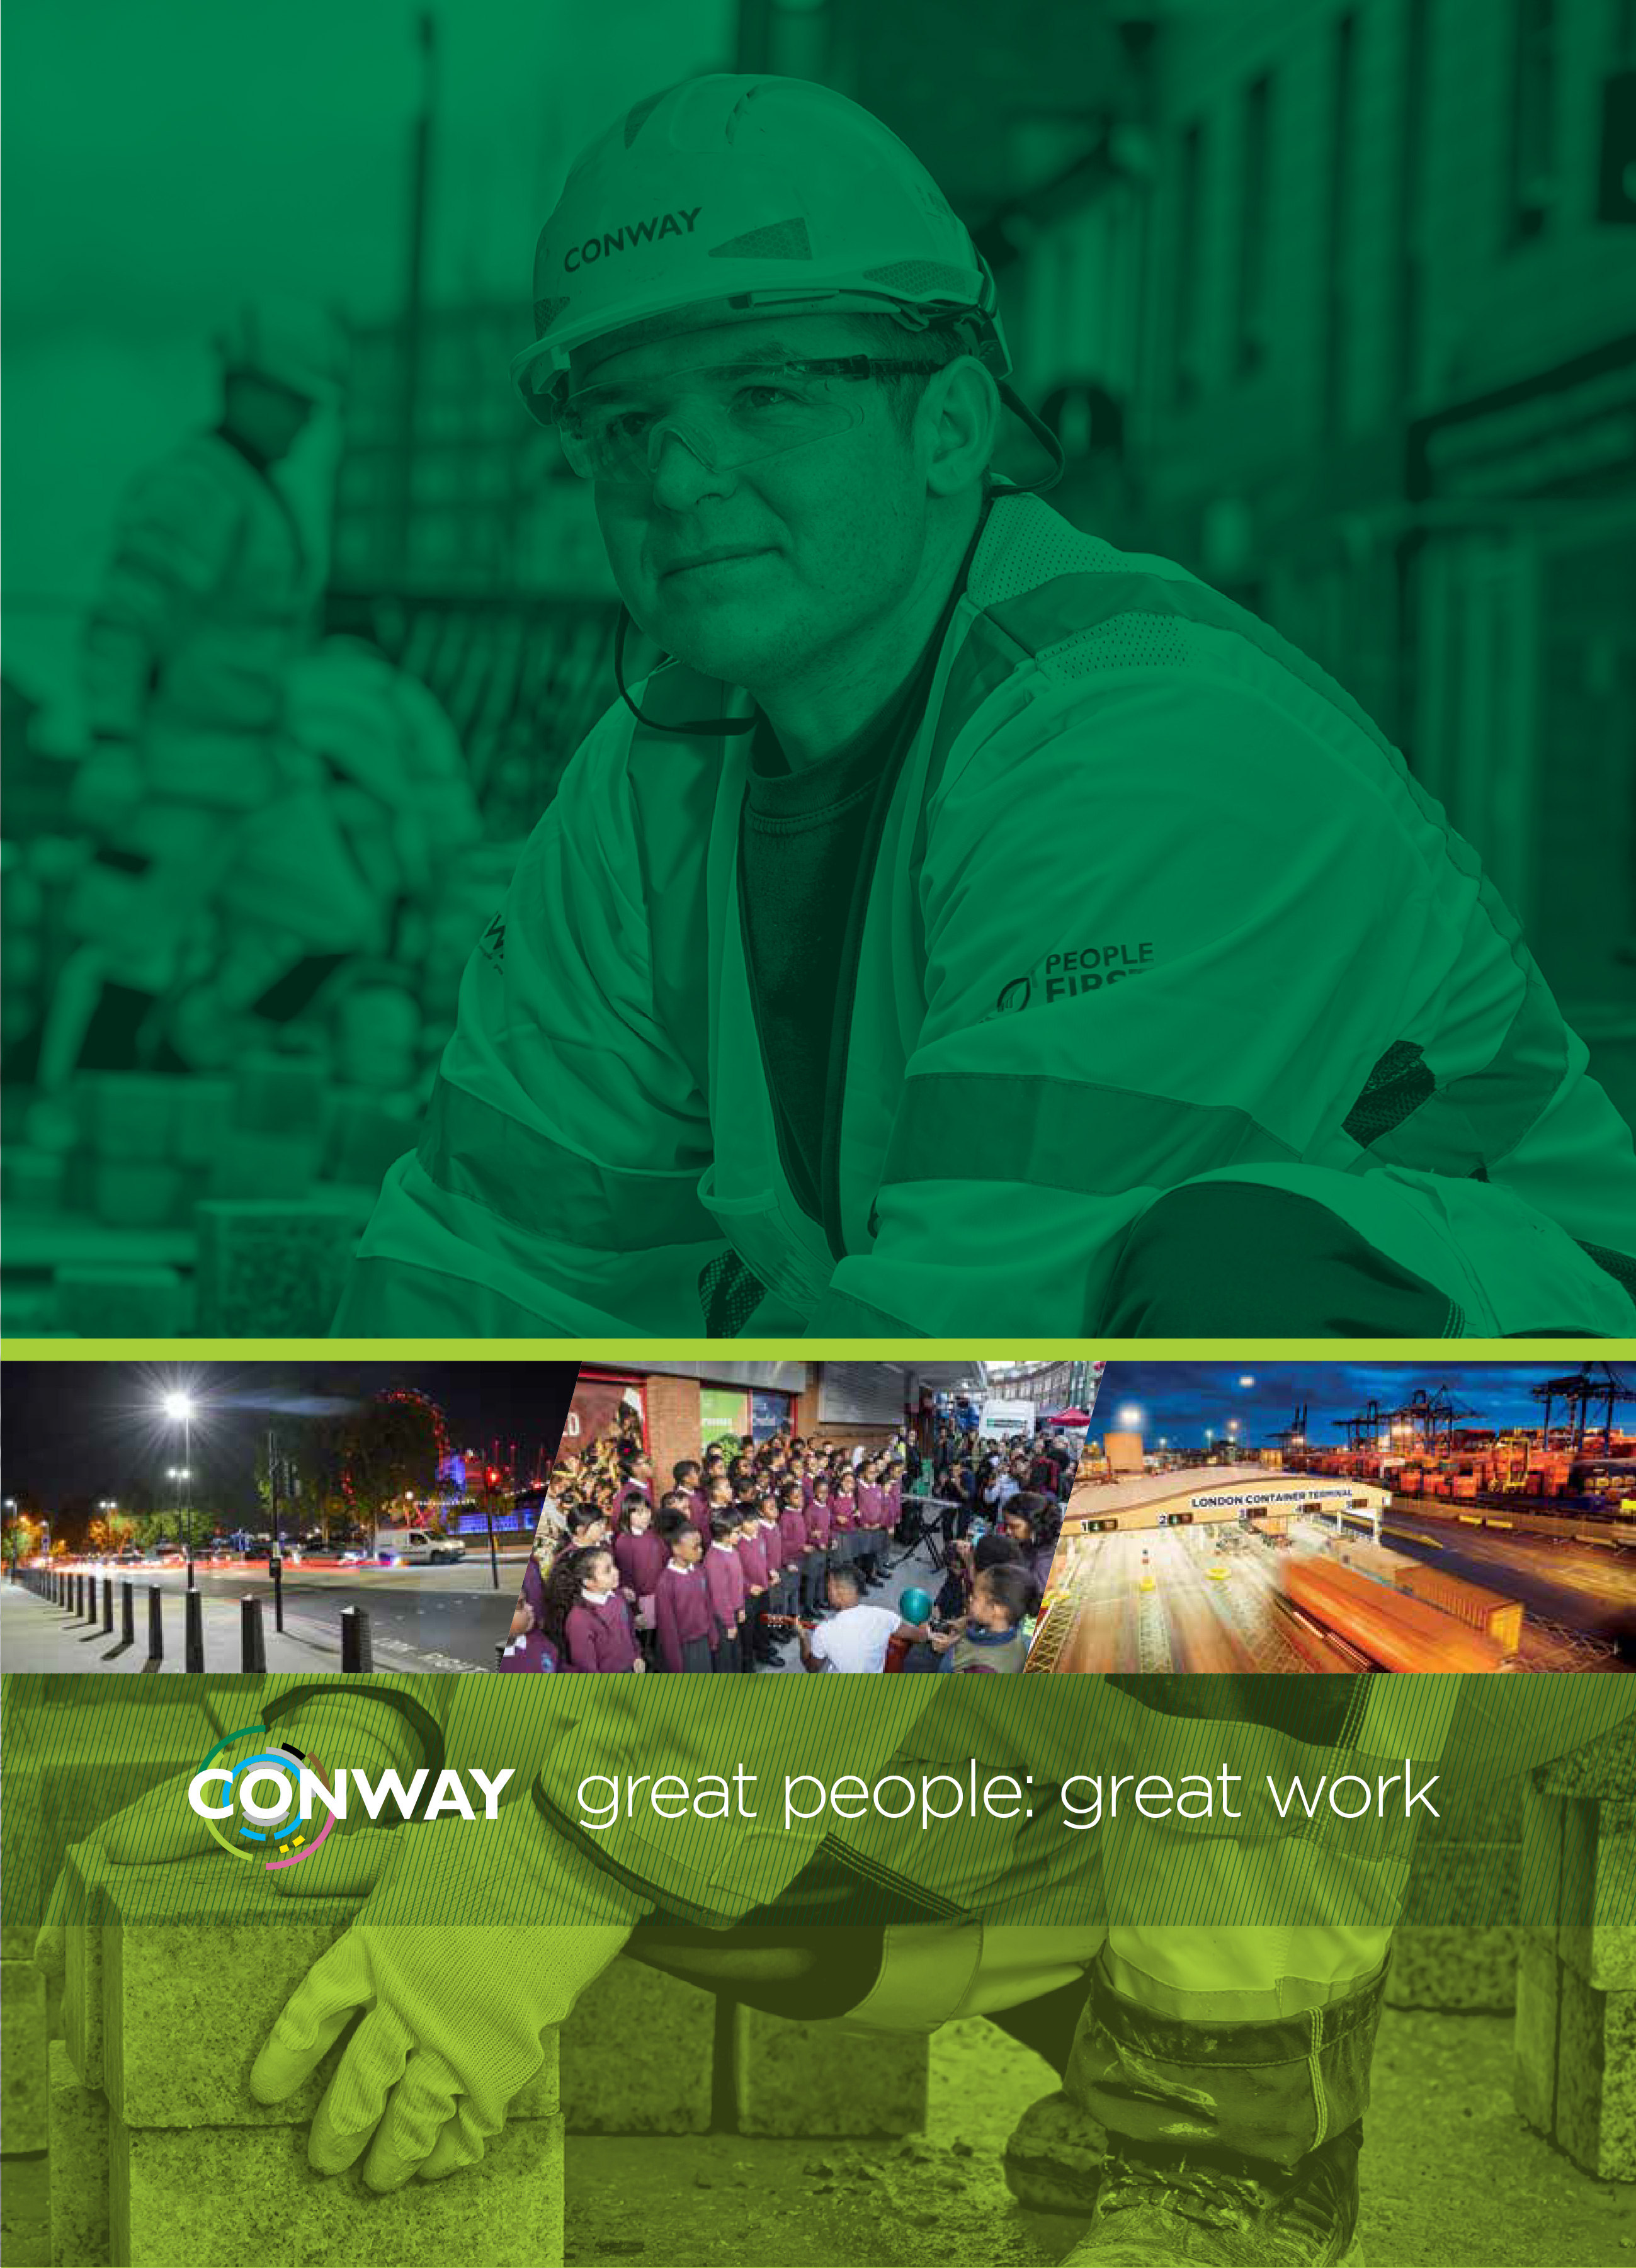 /files/library/images/about us/Library/Corporate/1-FM-CONWAY-CORPORATE-BROCHURE.jpg